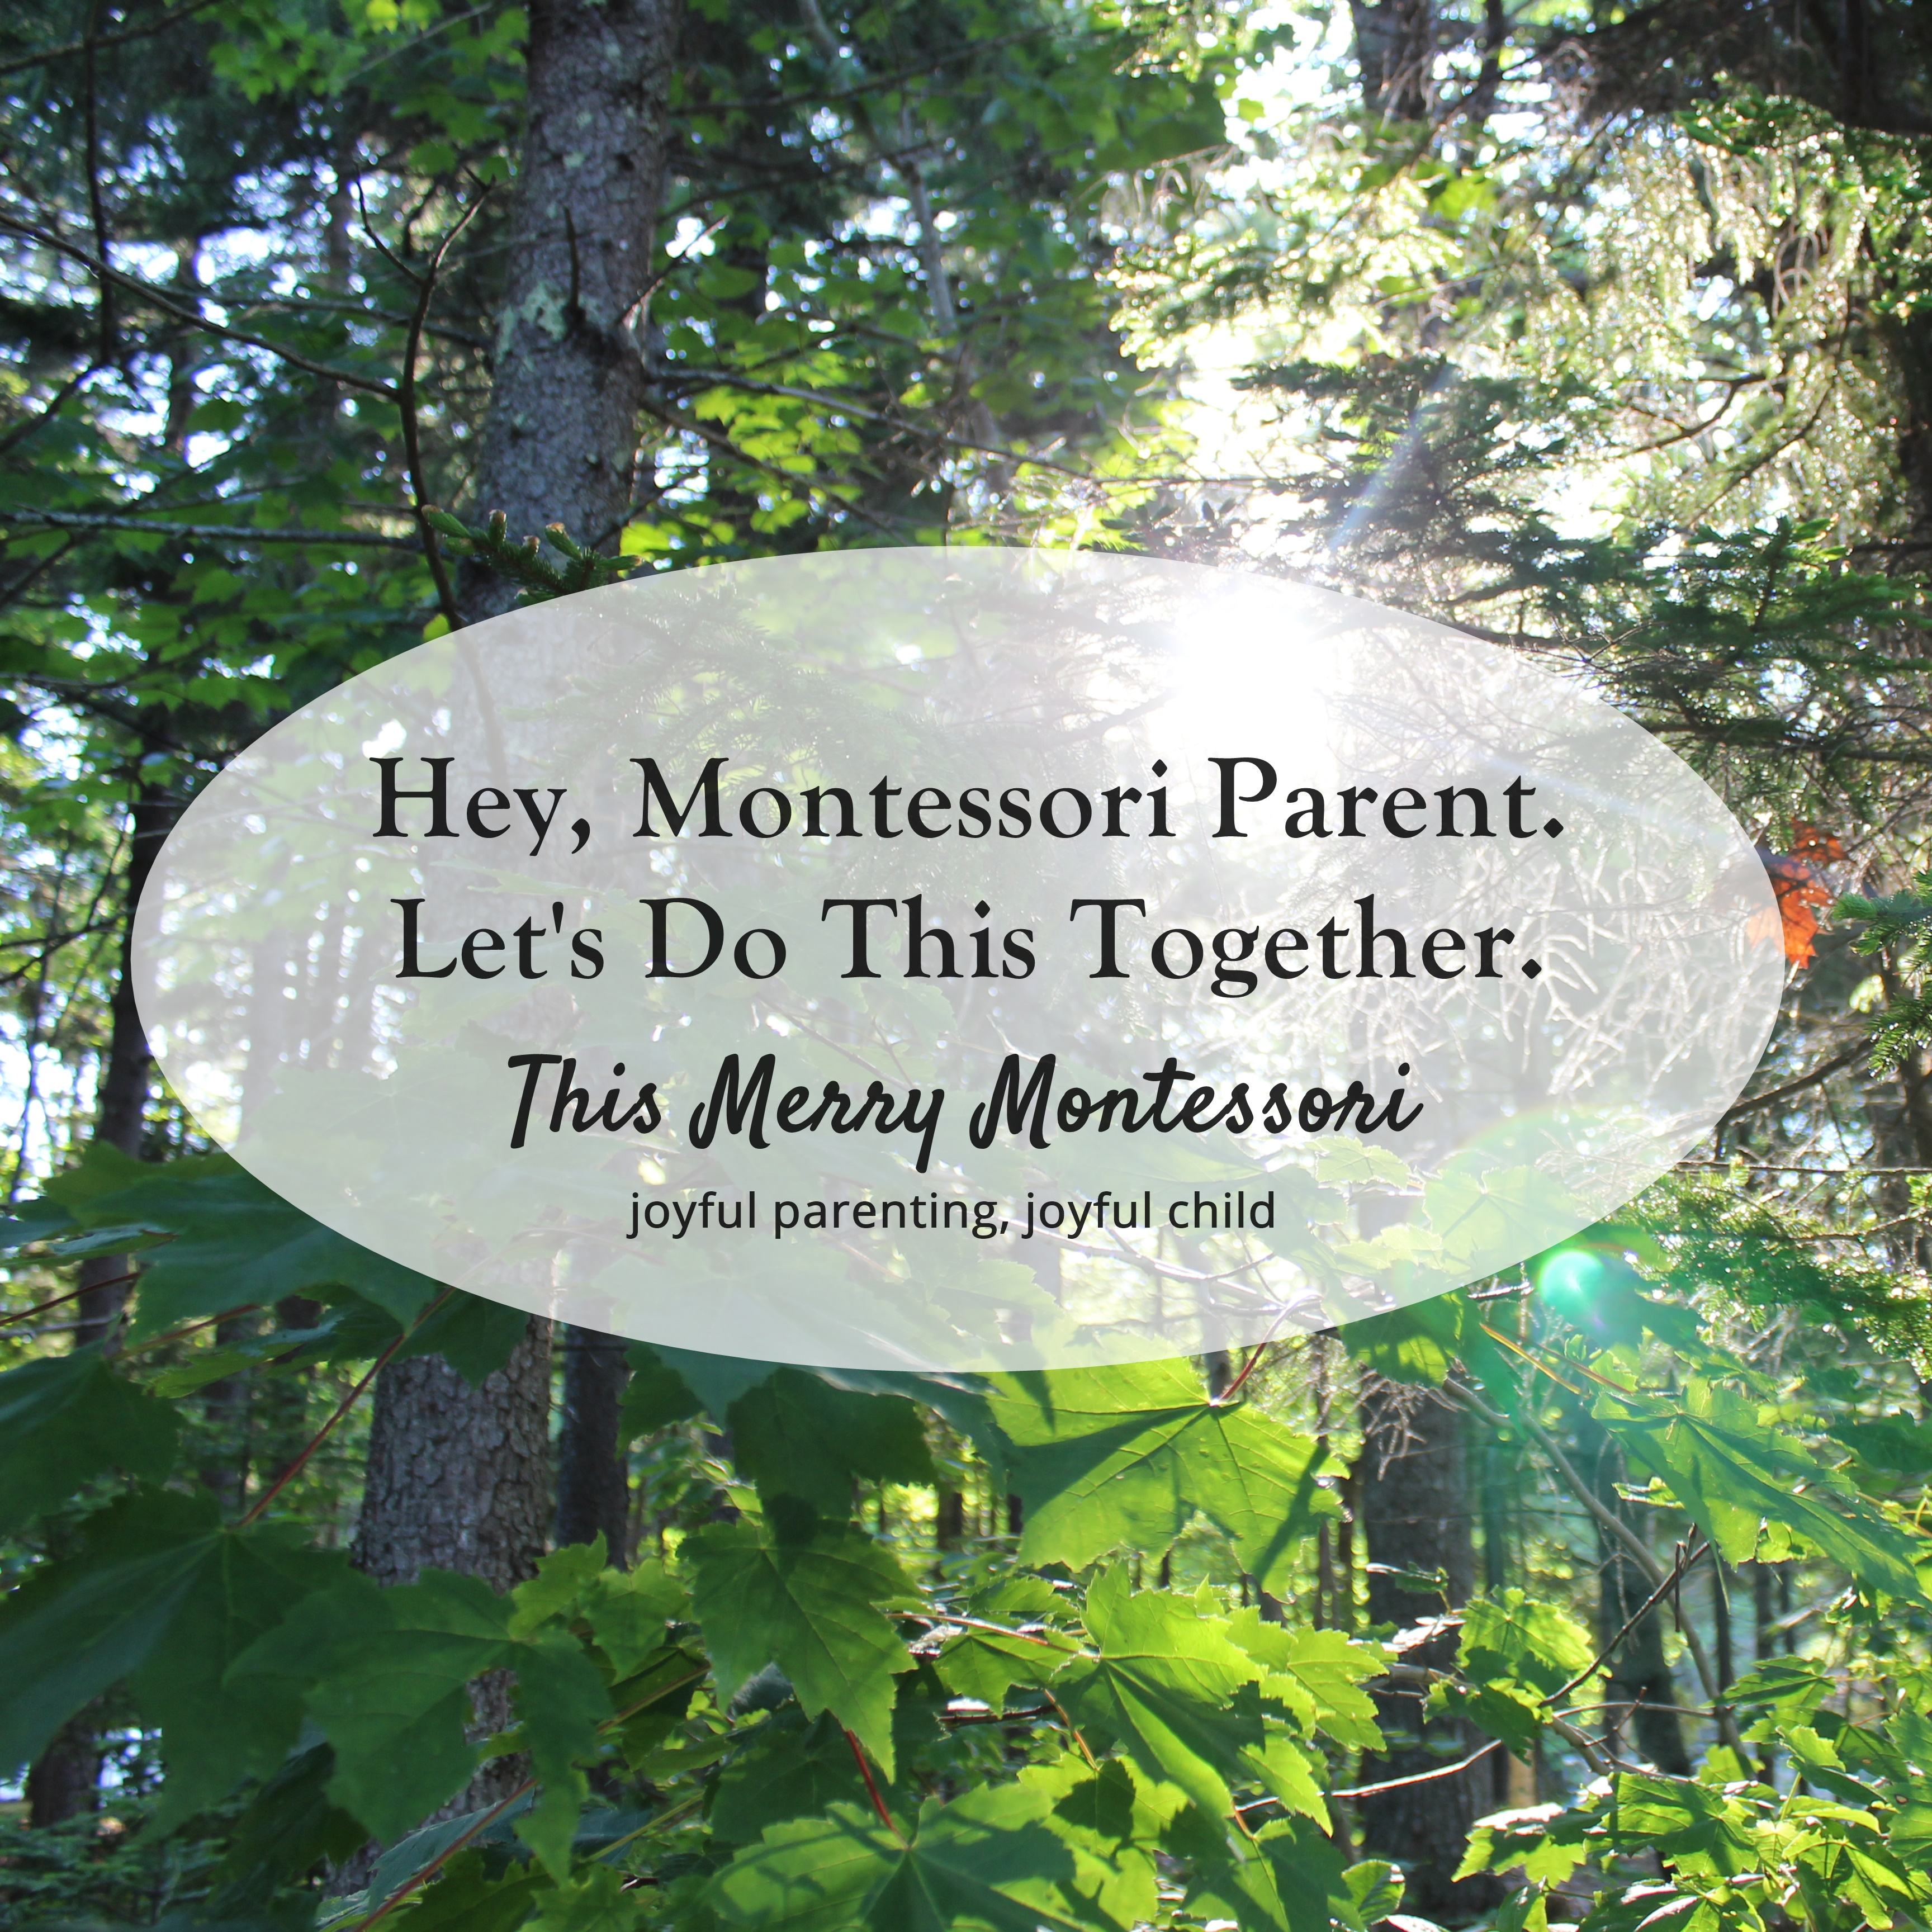 Let's Do This Together--This Merry Montessori